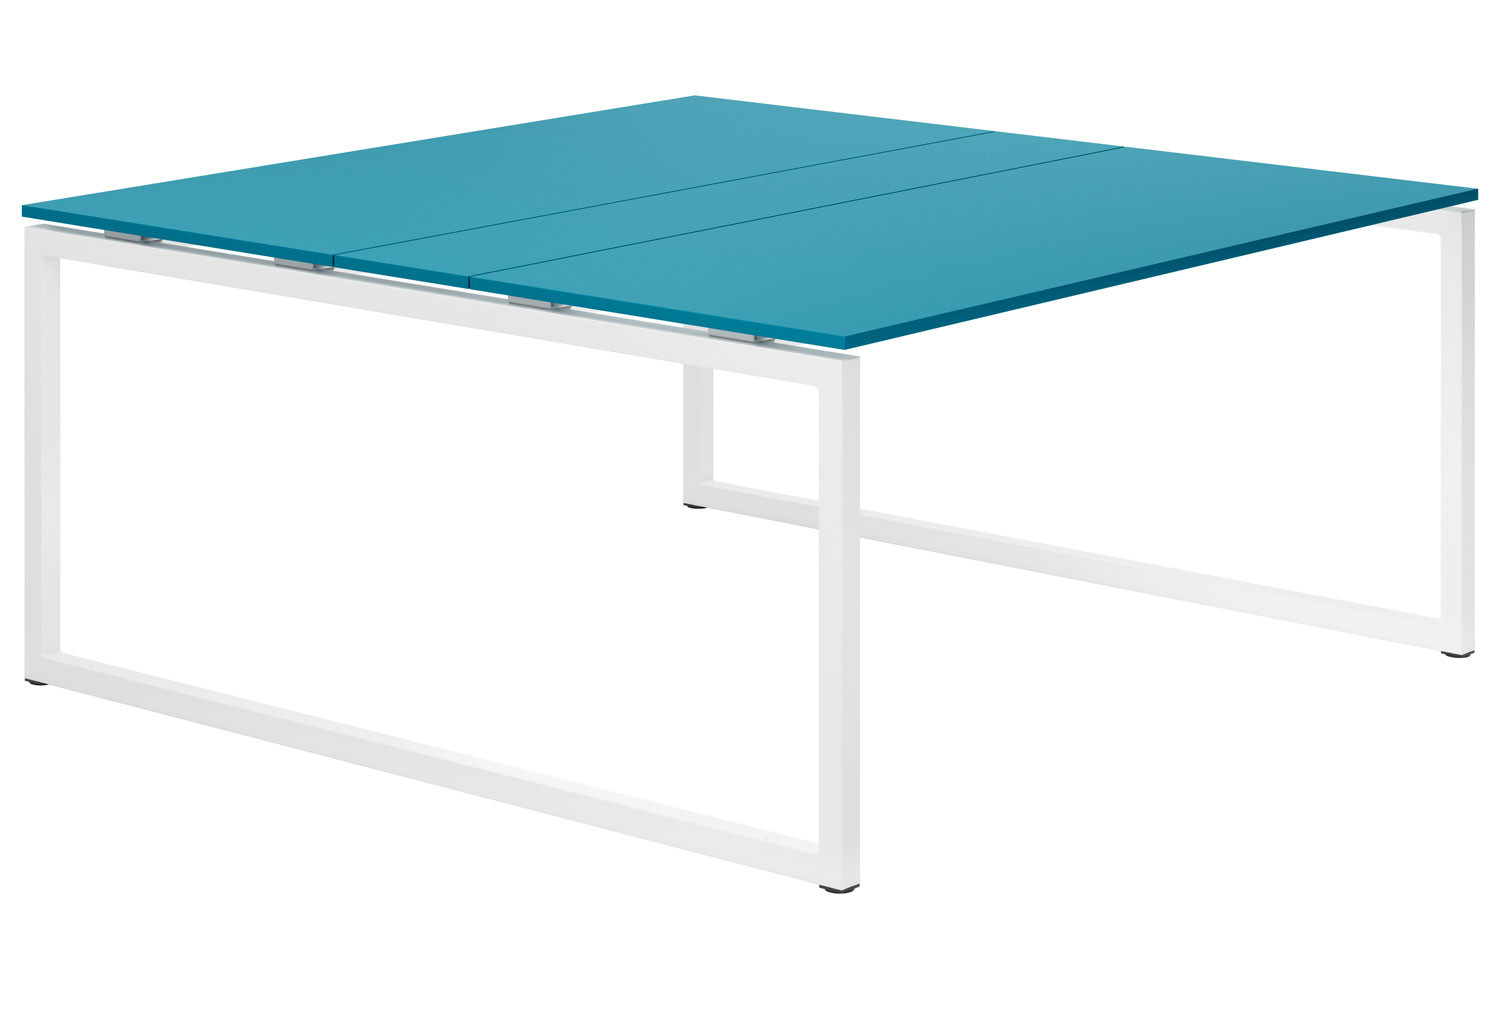 Campos Hooped Leg 6-8 Person Meeting Table (Light Blue)